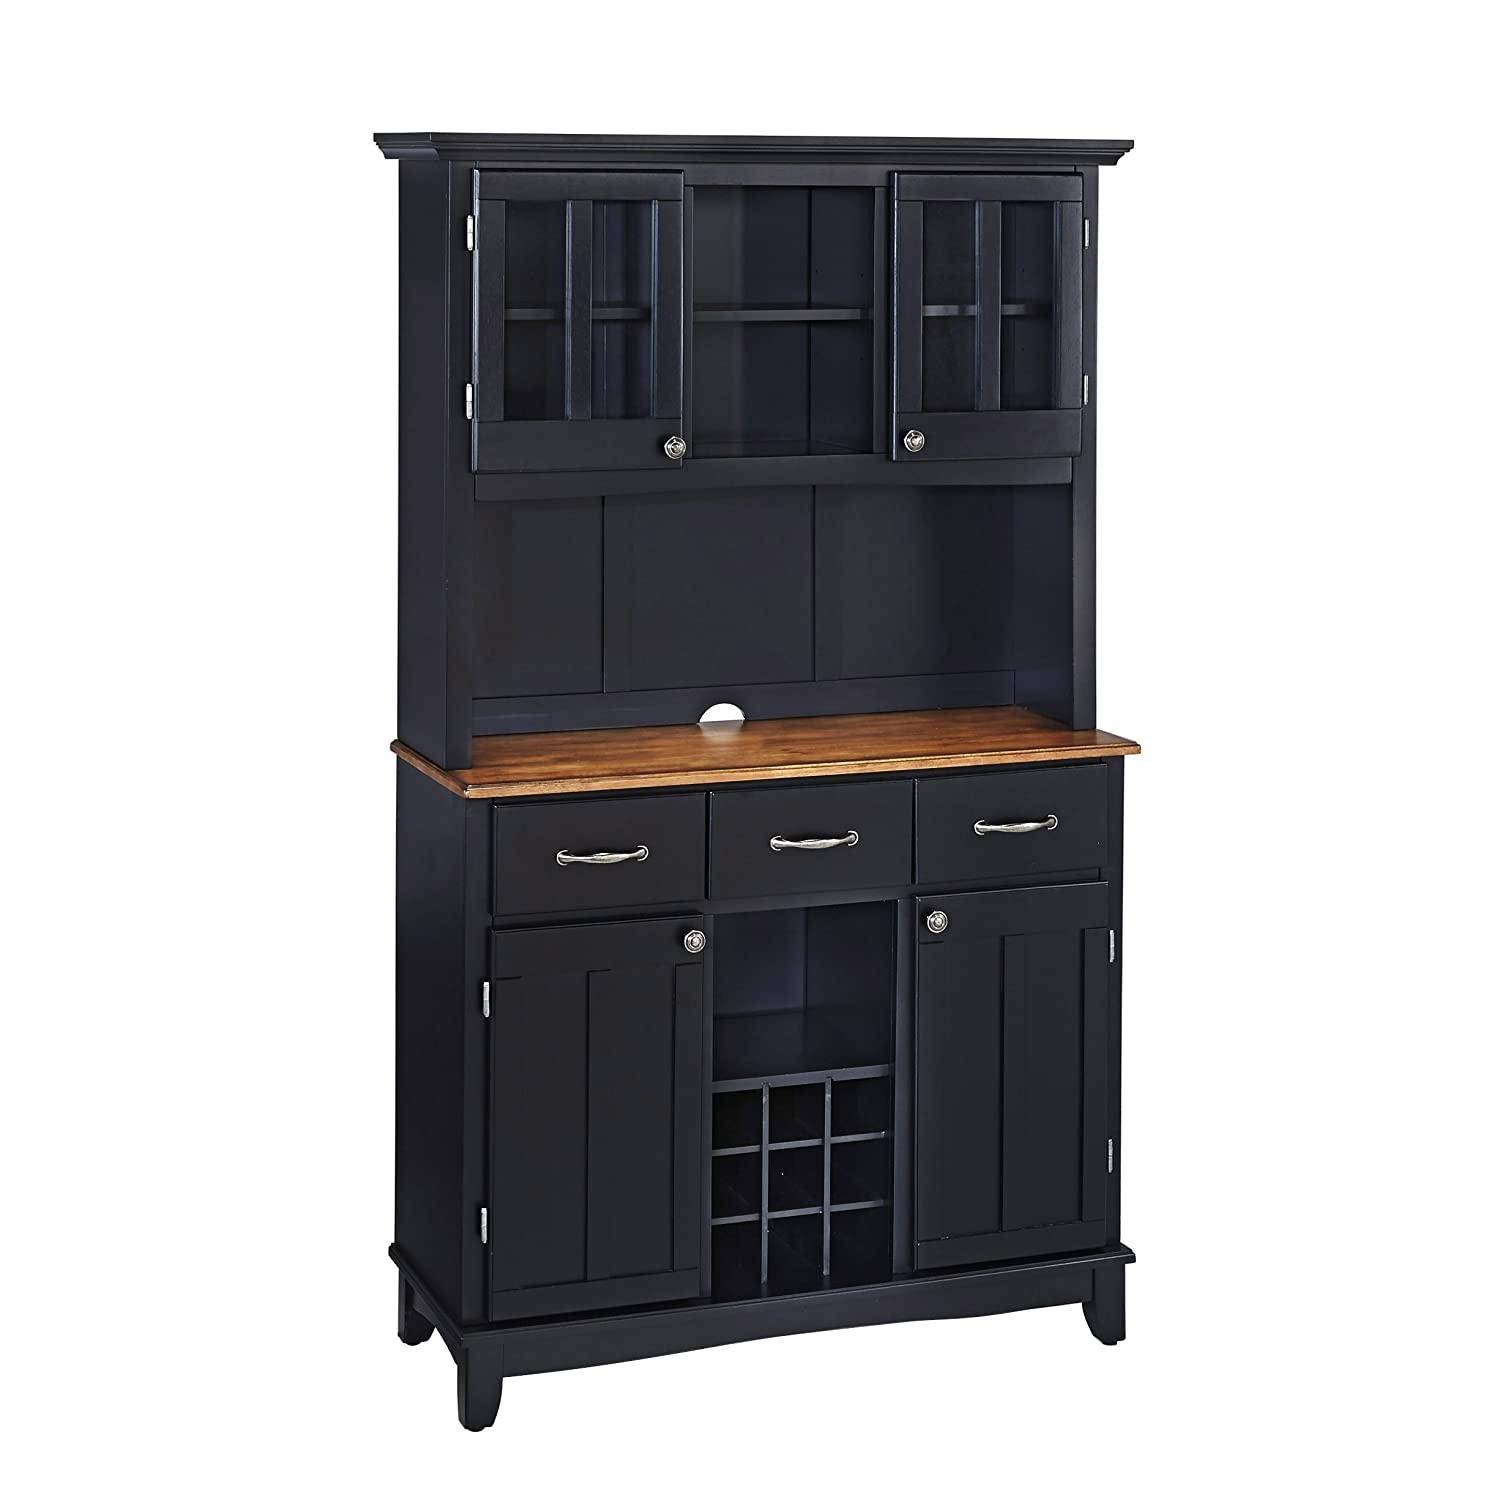 Amazon.com   Home Styles 5100 0046 42 Buffet Of Buffets Cottage Oak Wood  Top Buffet With Hutch, Black Finish, 41 3/4 Inch   Buffets U0026 Sideboards